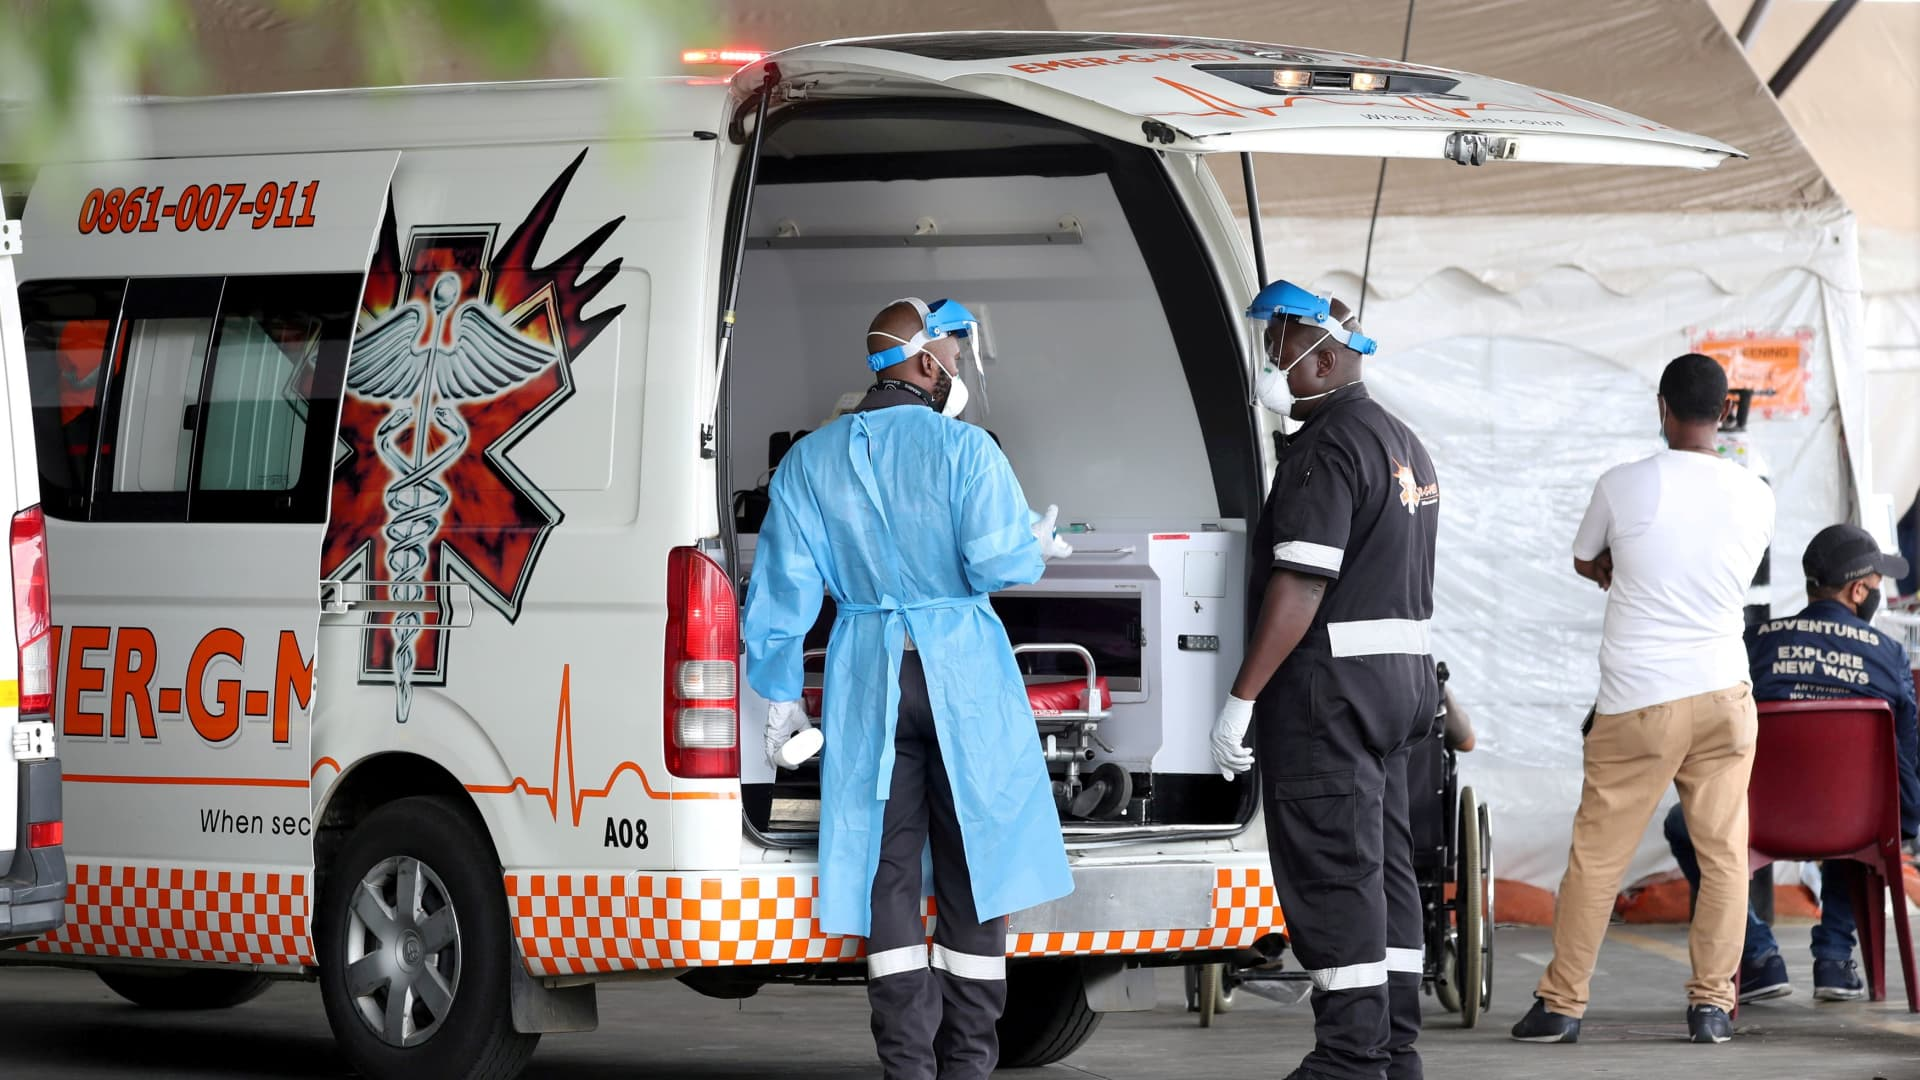 Health workers chat near an ambulance at the parking lot of the Steve Biko Academic Hospital, amid a nationwide coronavirus disease (COVID-19) lockdown, in Pretoria, South Africa, January 11, 2021.